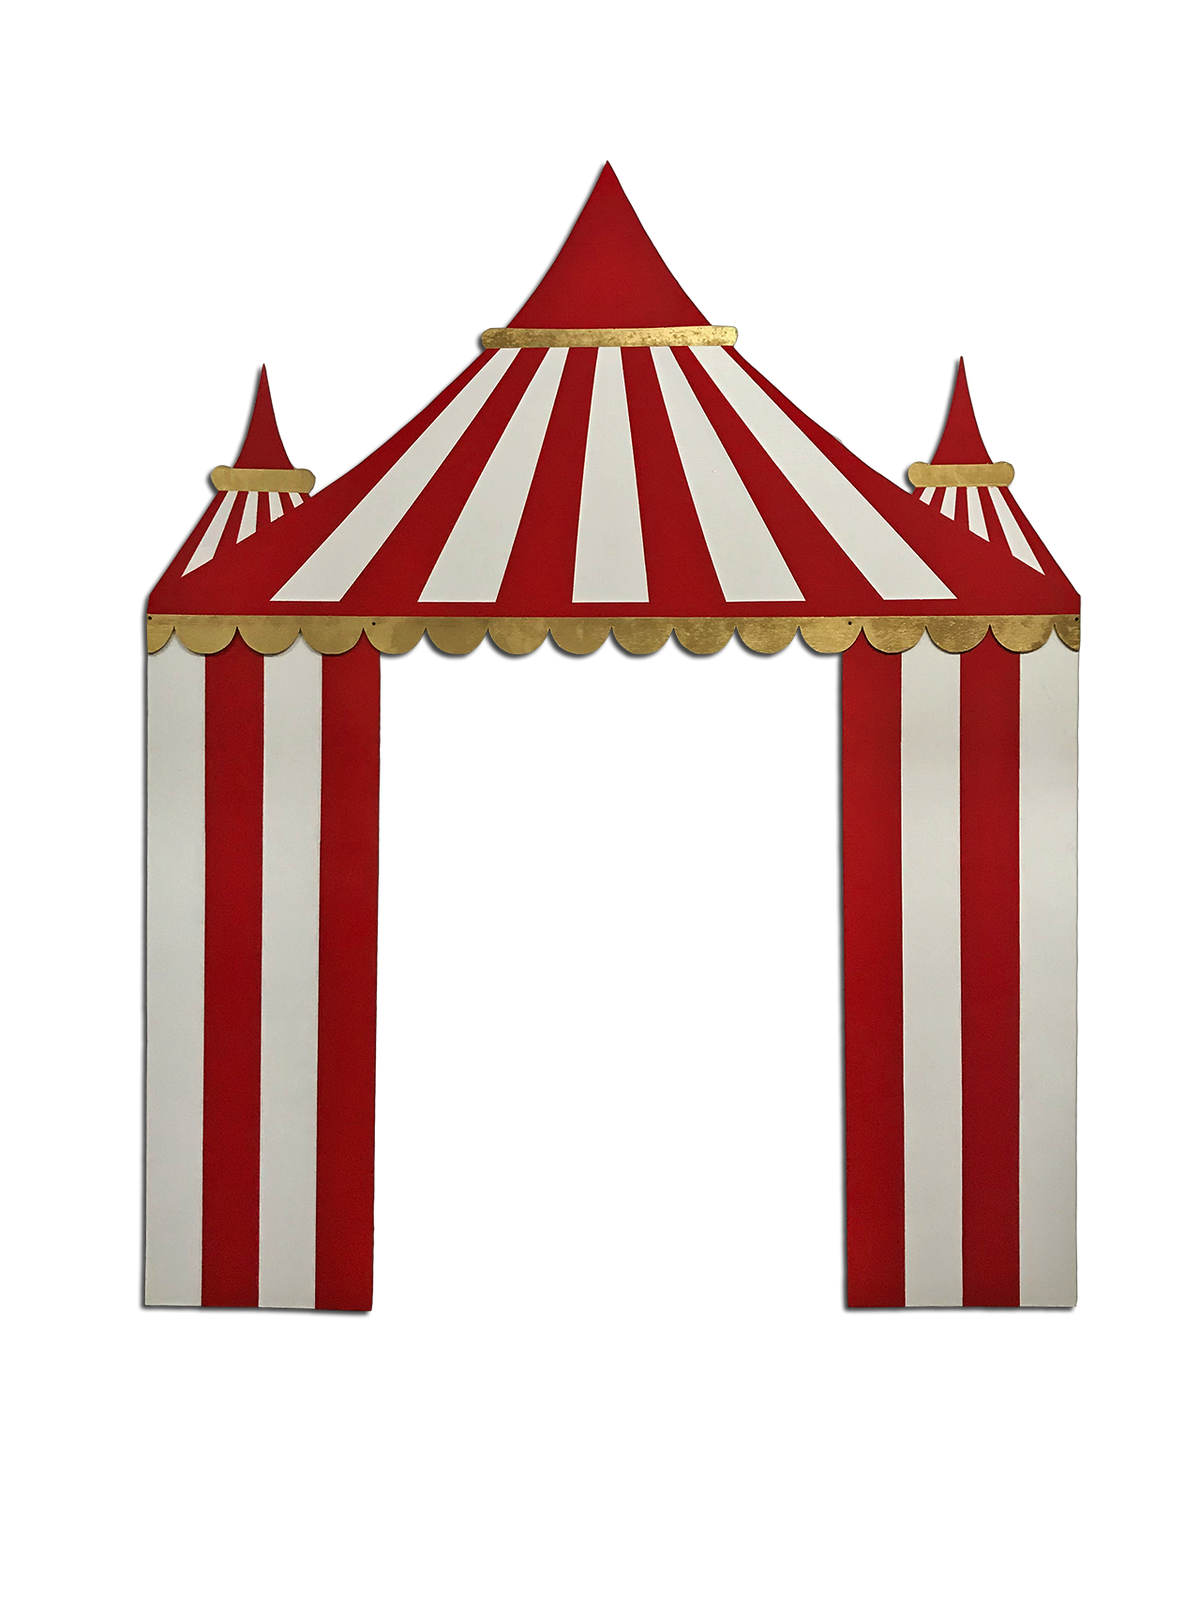 Red Circus / Carnival Tent Backdrop